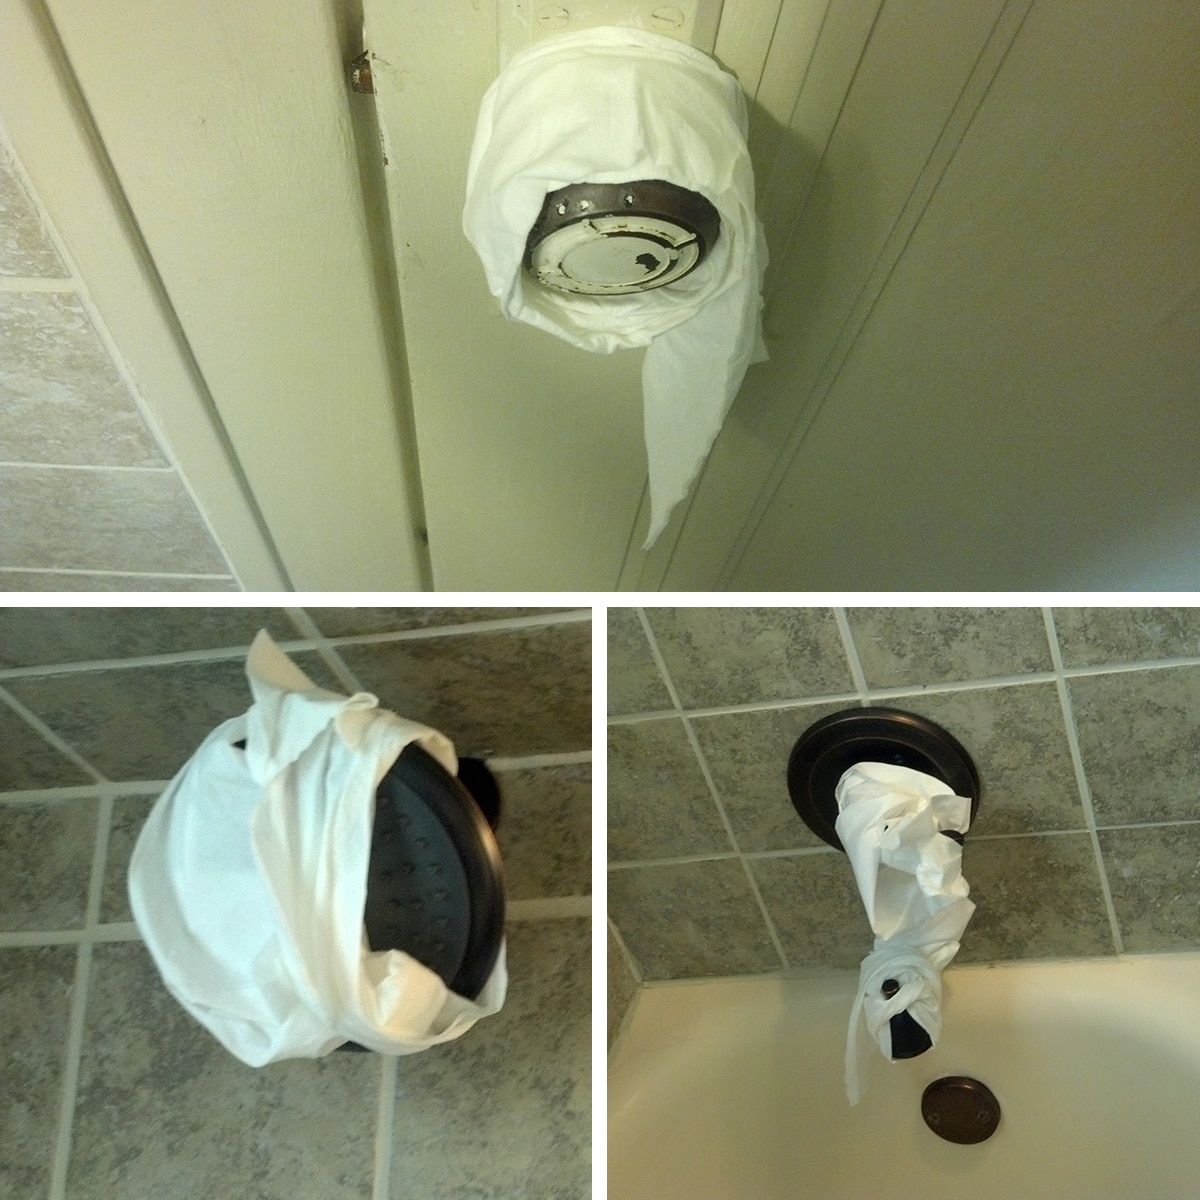 The tub faucet and handles wrapped in toilet tissue.